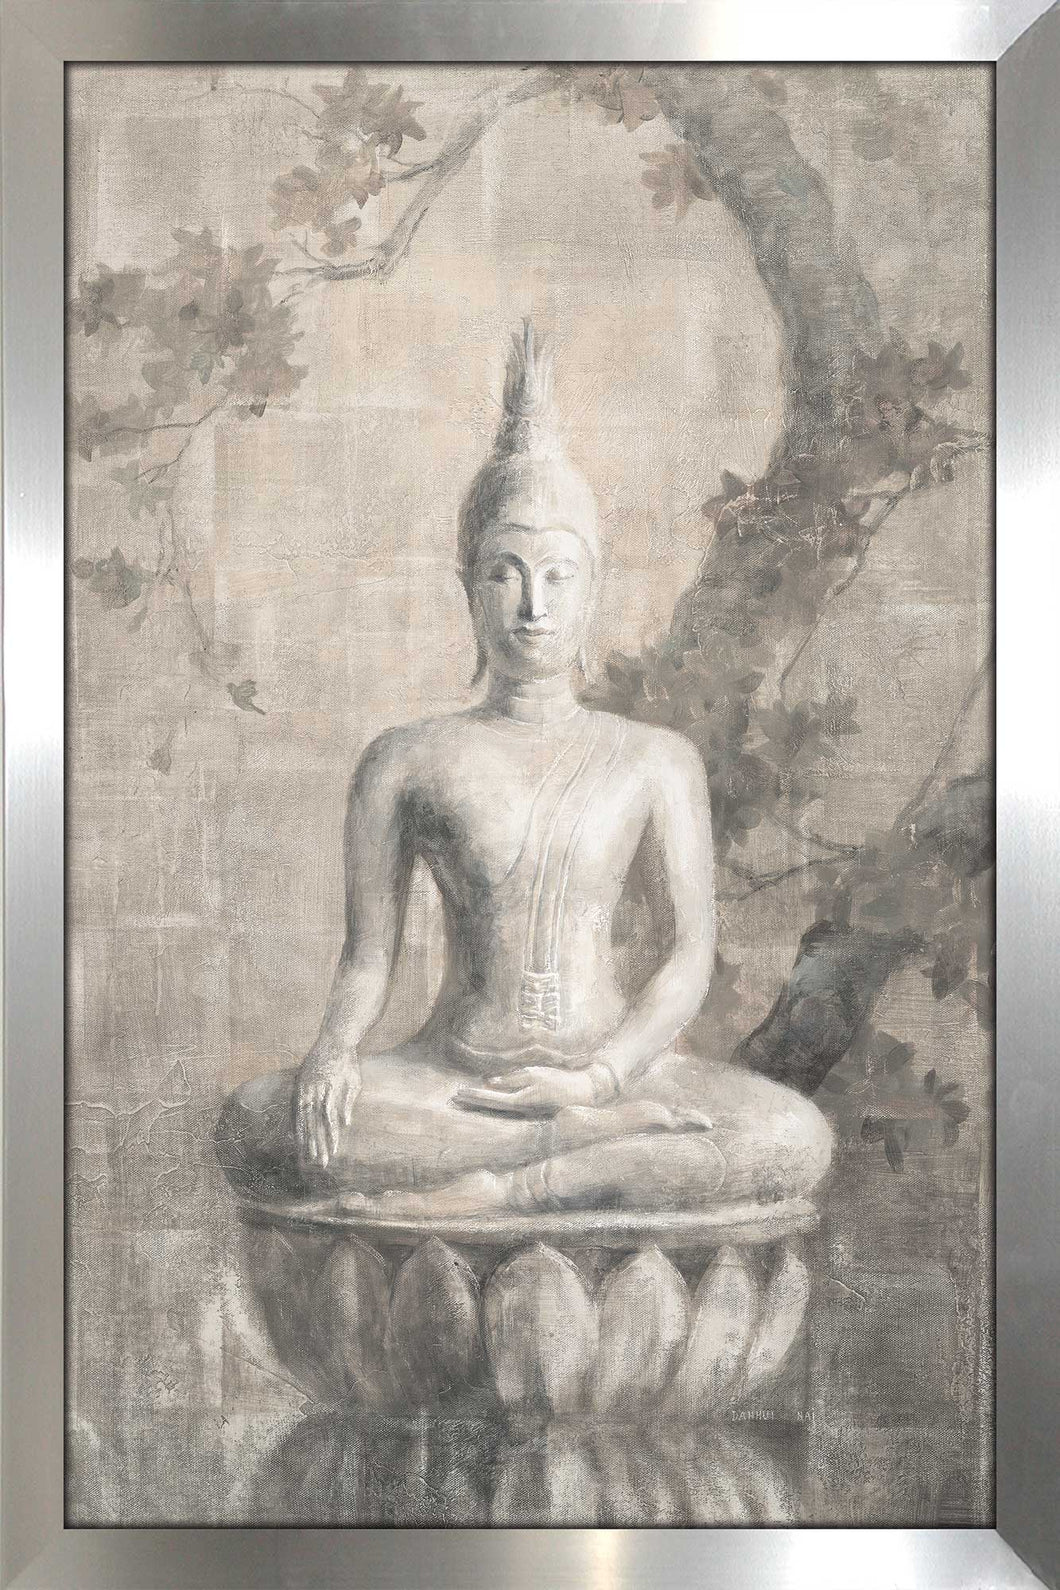 Buddha Neutral Print on Acrylic Spiritual,Gray art,Portrait Shape,All Acrylic Art,Danhui Nai,All Subjects,All Colors,All Shapes,All Artists